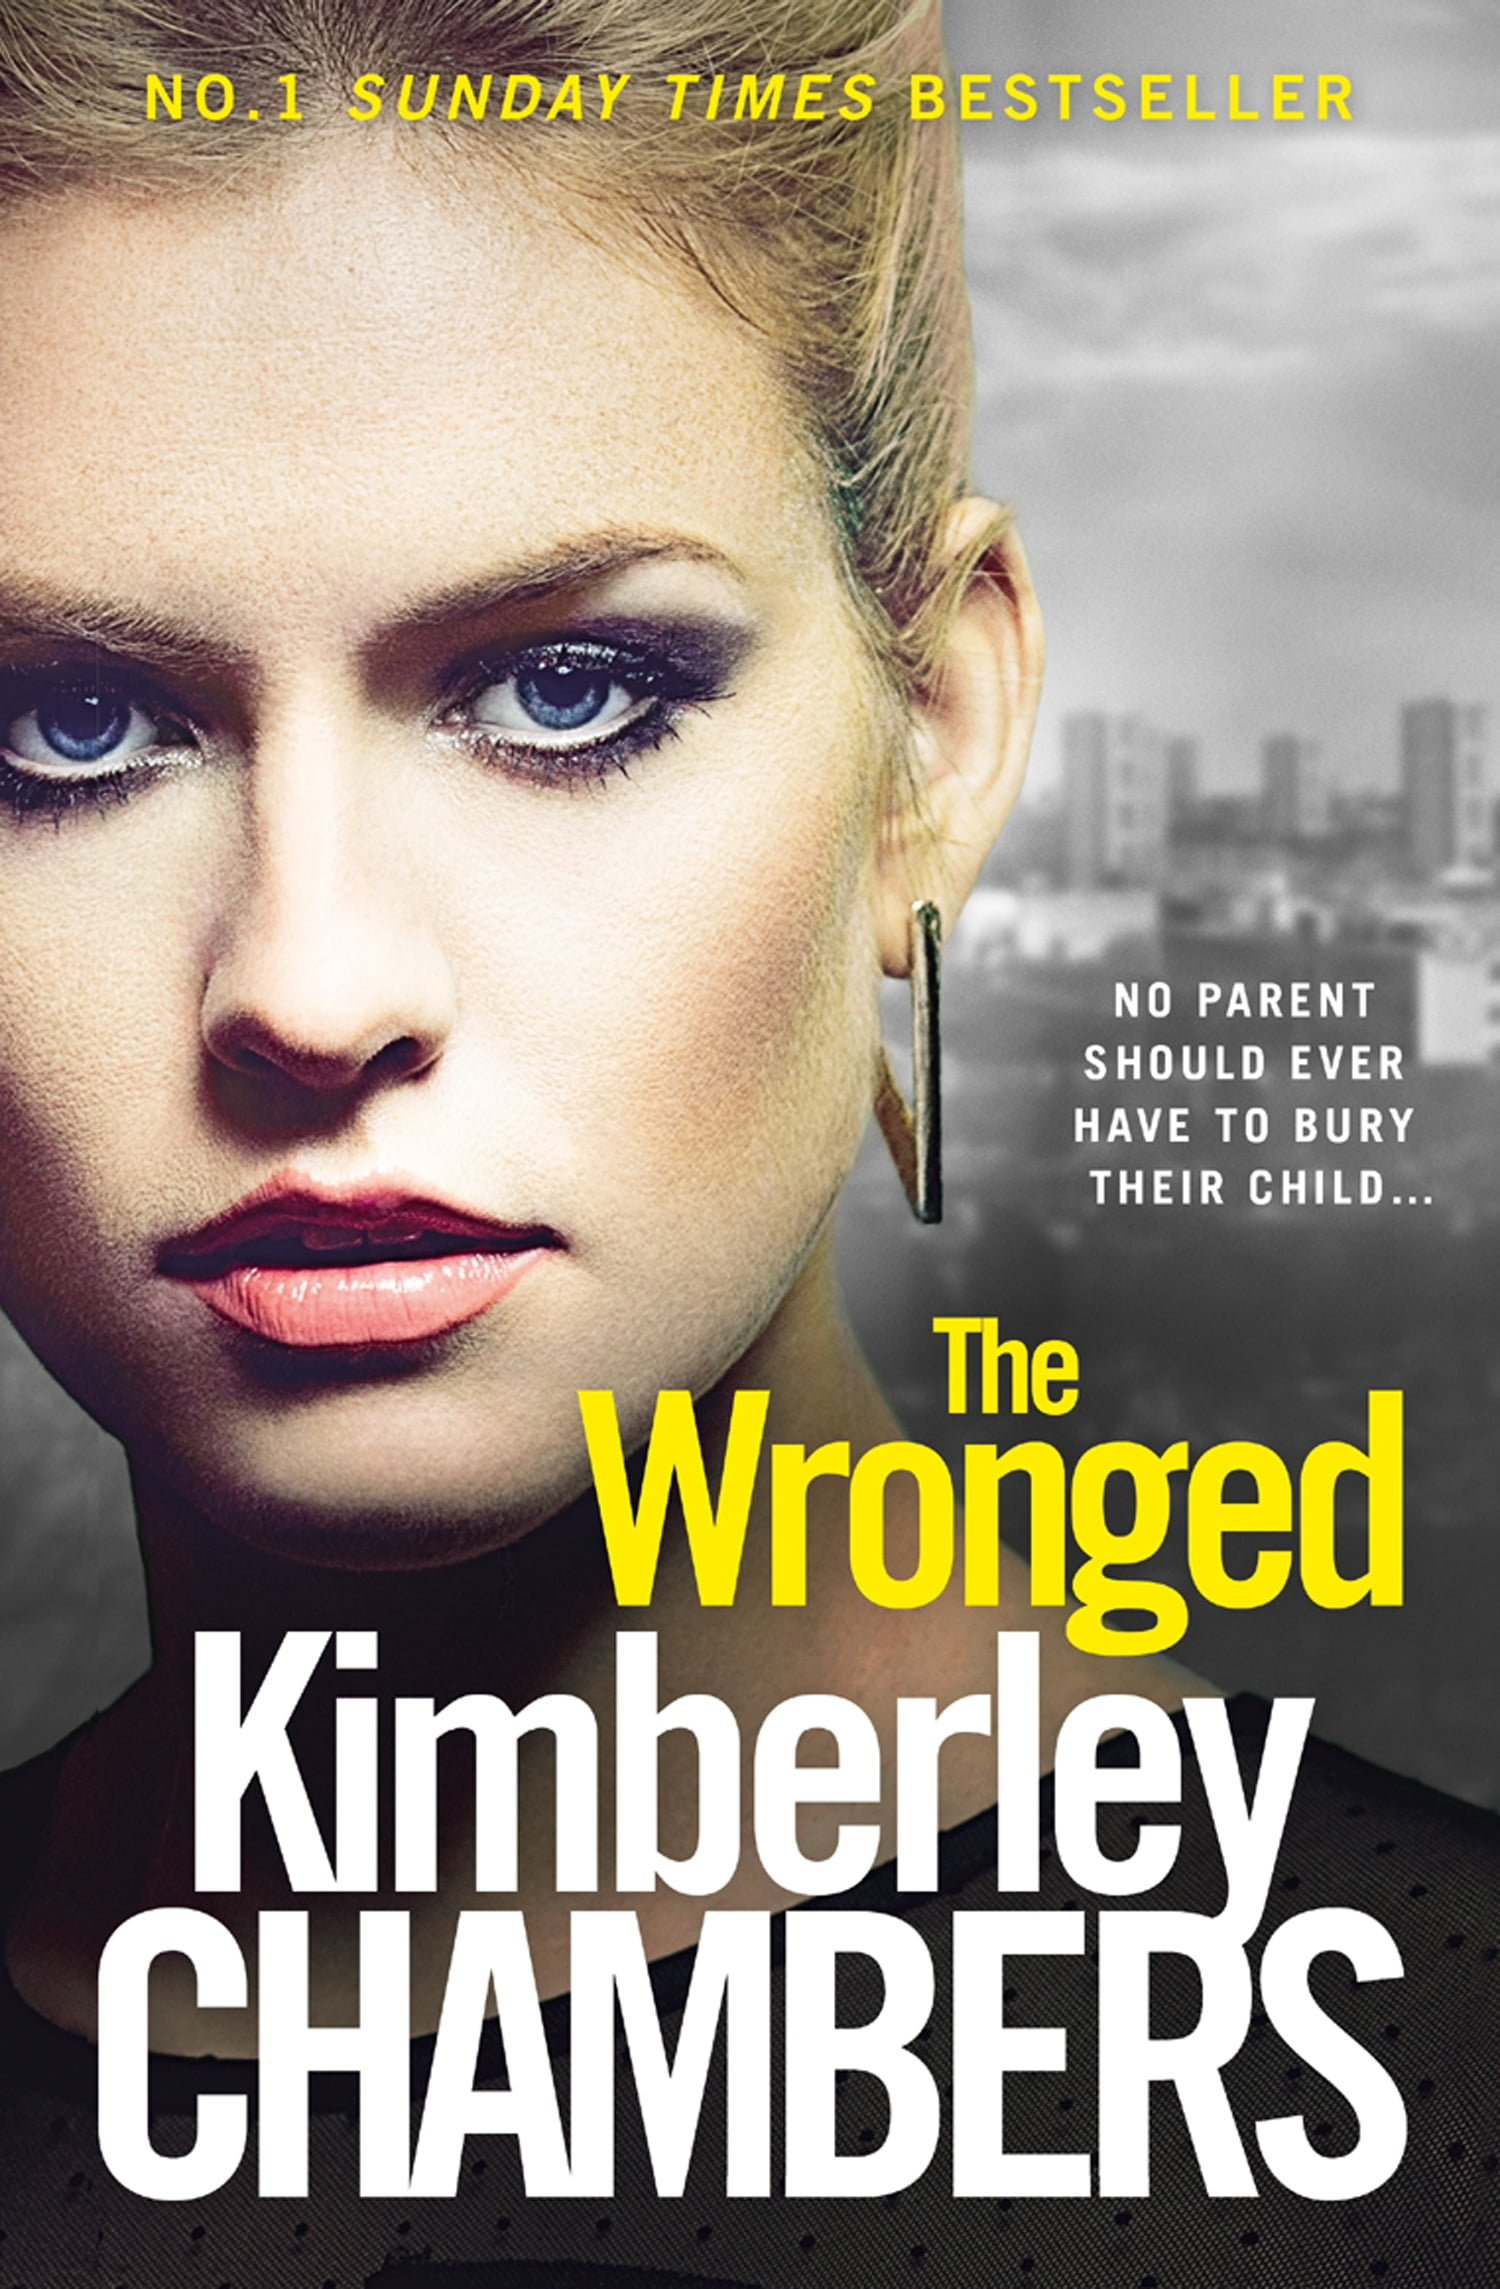 The Wronged: No parent should ever have to bury their child... de Kimberley Chambers EPUB